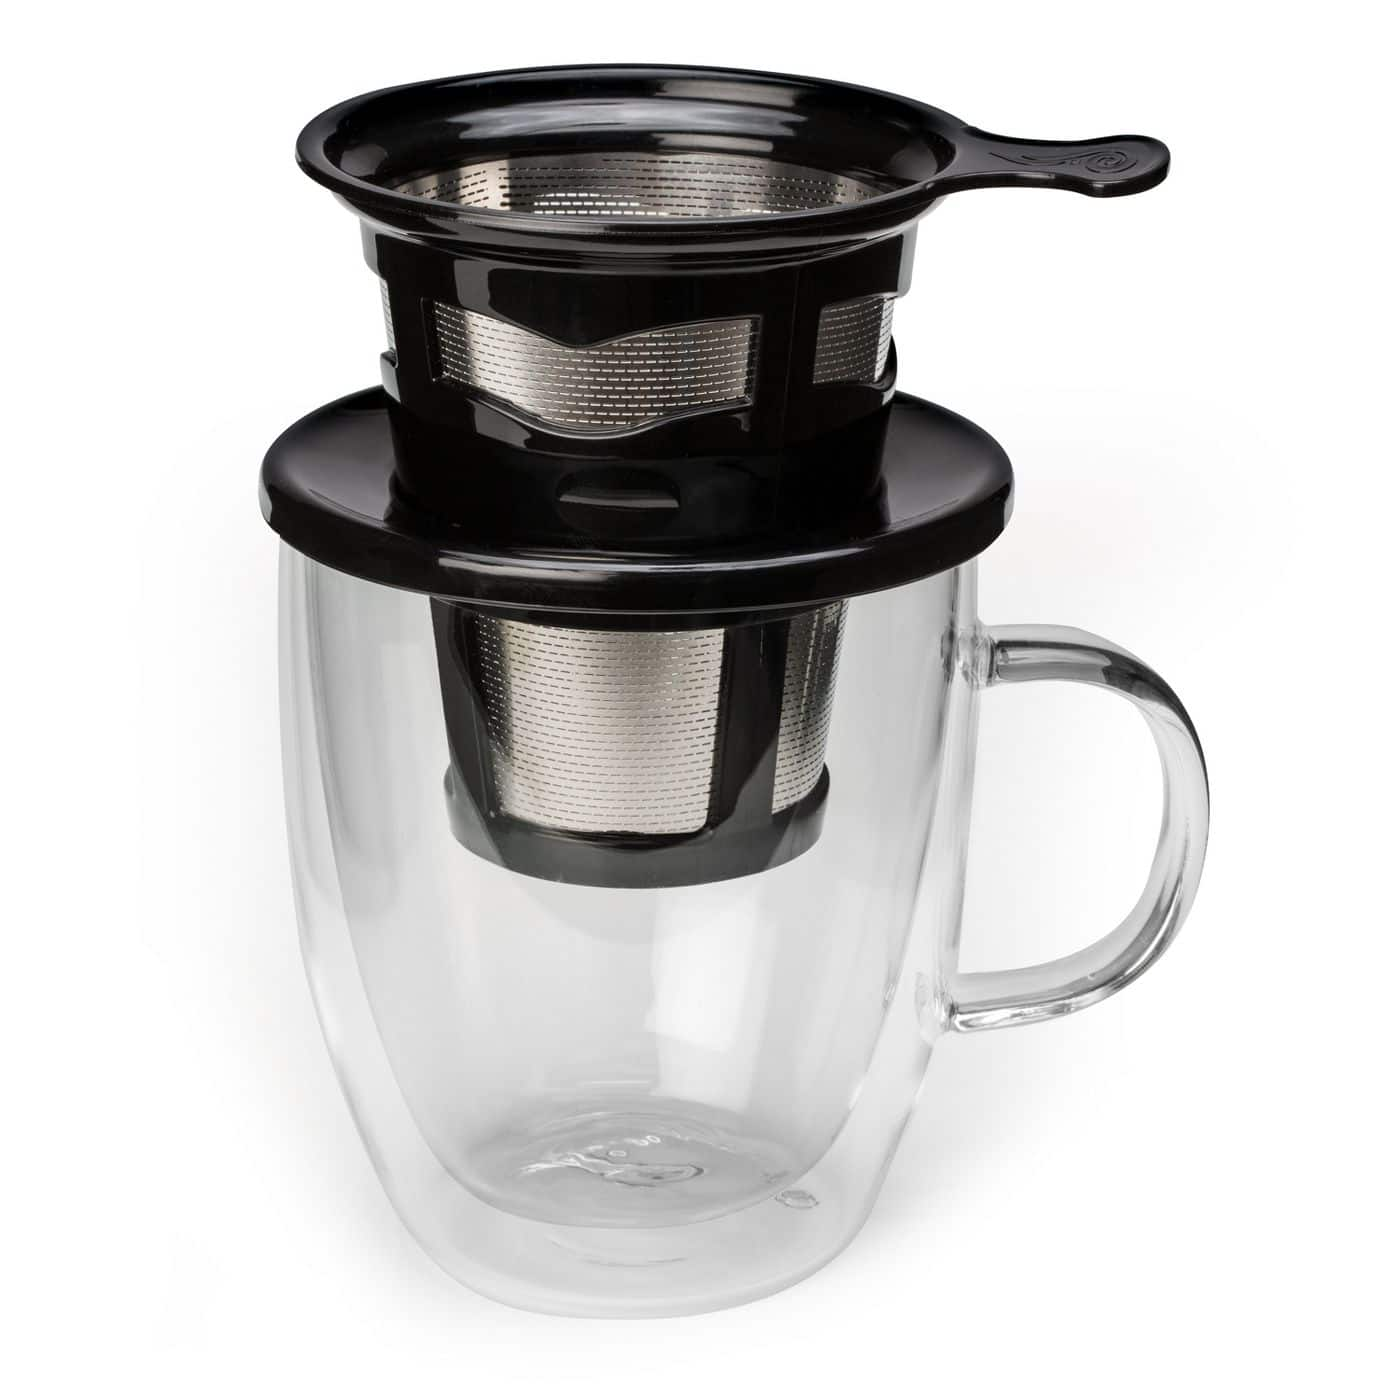 Java Concepts Deluxe Individual Coffee/Tea Pour Over $5.86